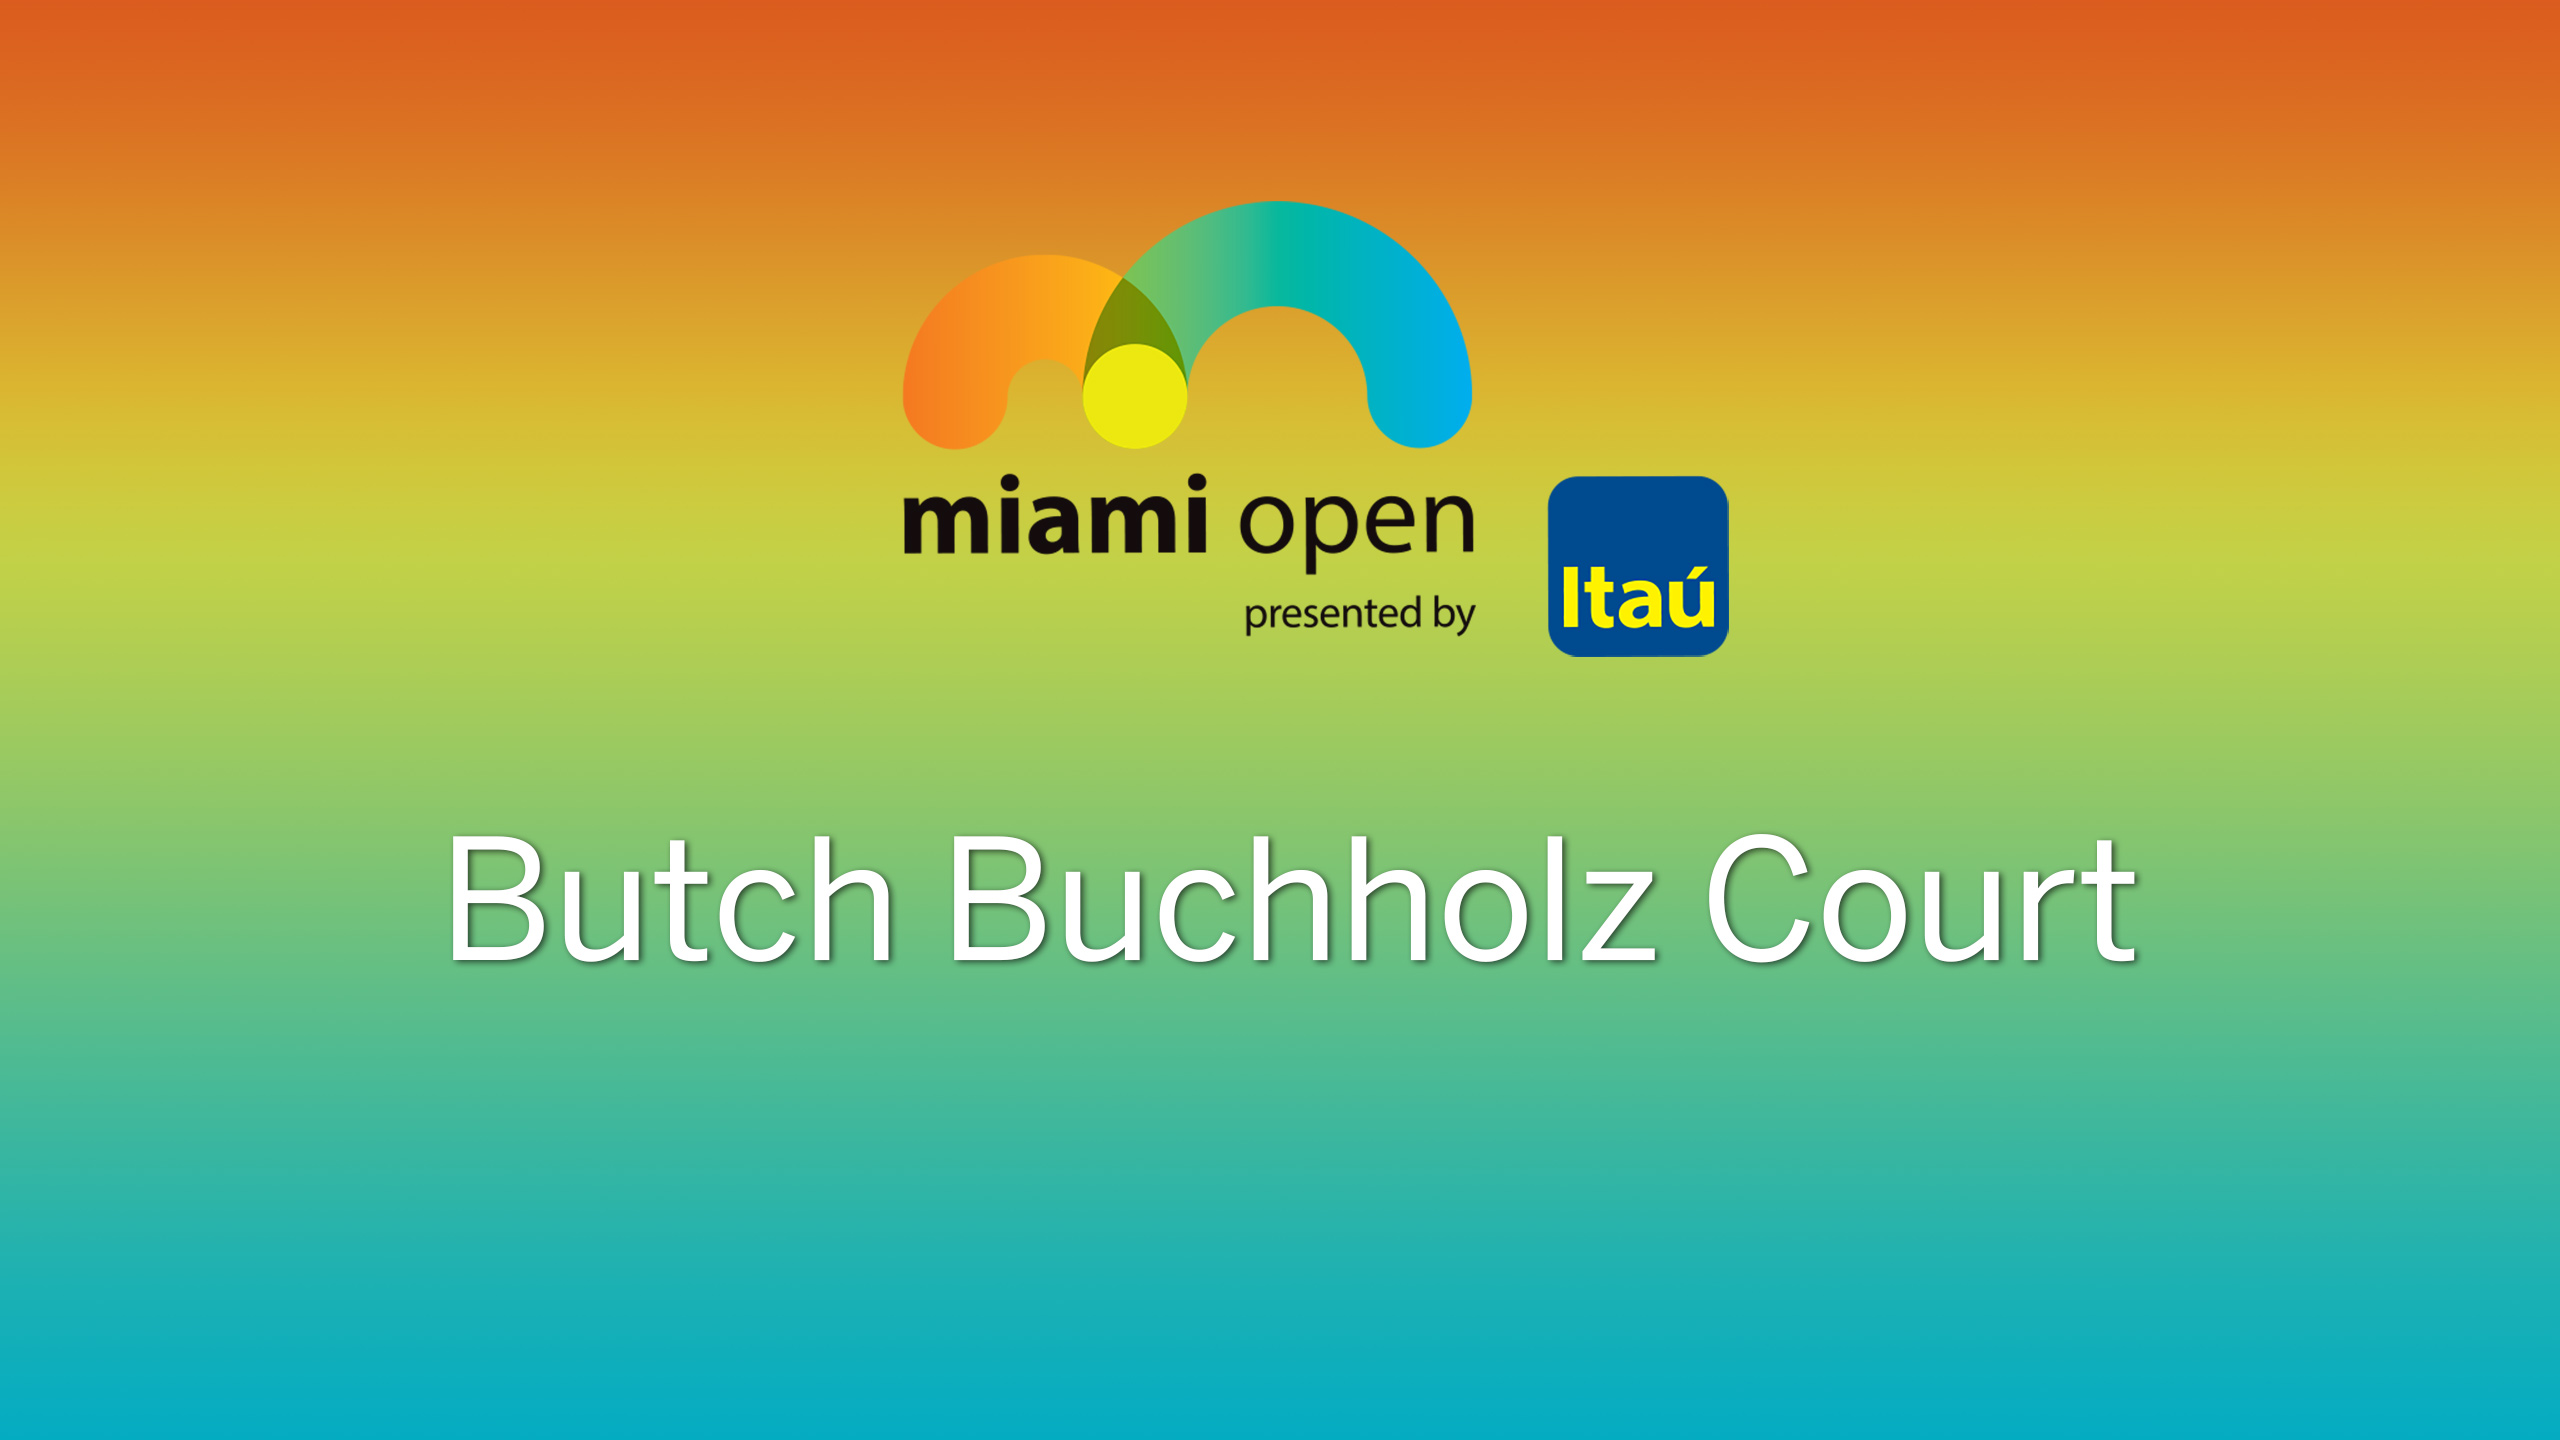 WTA: Butch Buchholz Court - Miami Open